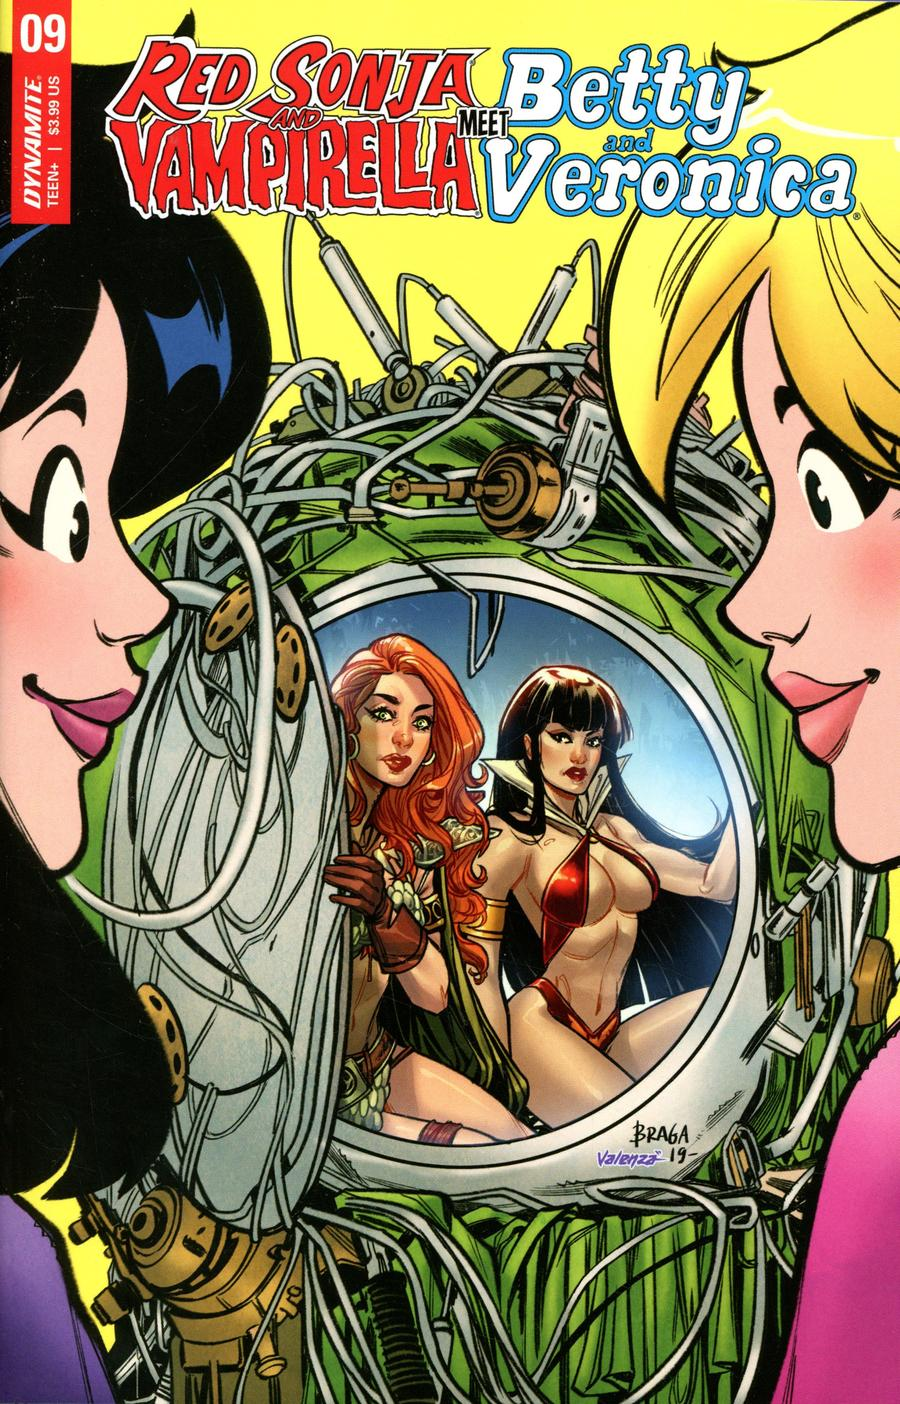 Red Sonja And Vampirella Meet Betty And Veronica #9 Cover C Variant Laura Braga Cover